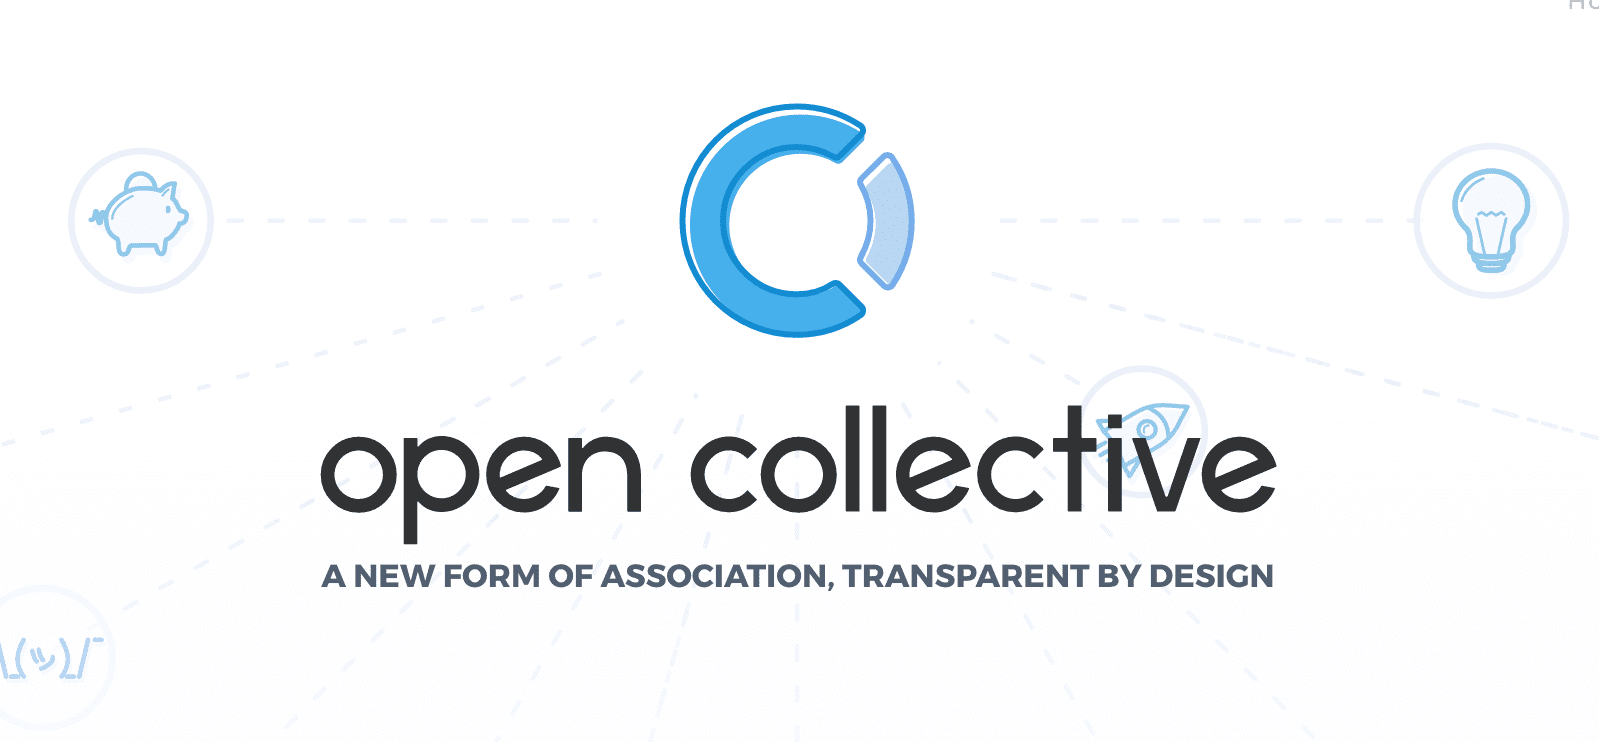 open-collective-launches-funds-to-help-companies-streamline-donations-to-multiple-open-source-projects Open Collective Launches Funds to Help Companies Streamline Donations to Multiple Open Source Projects